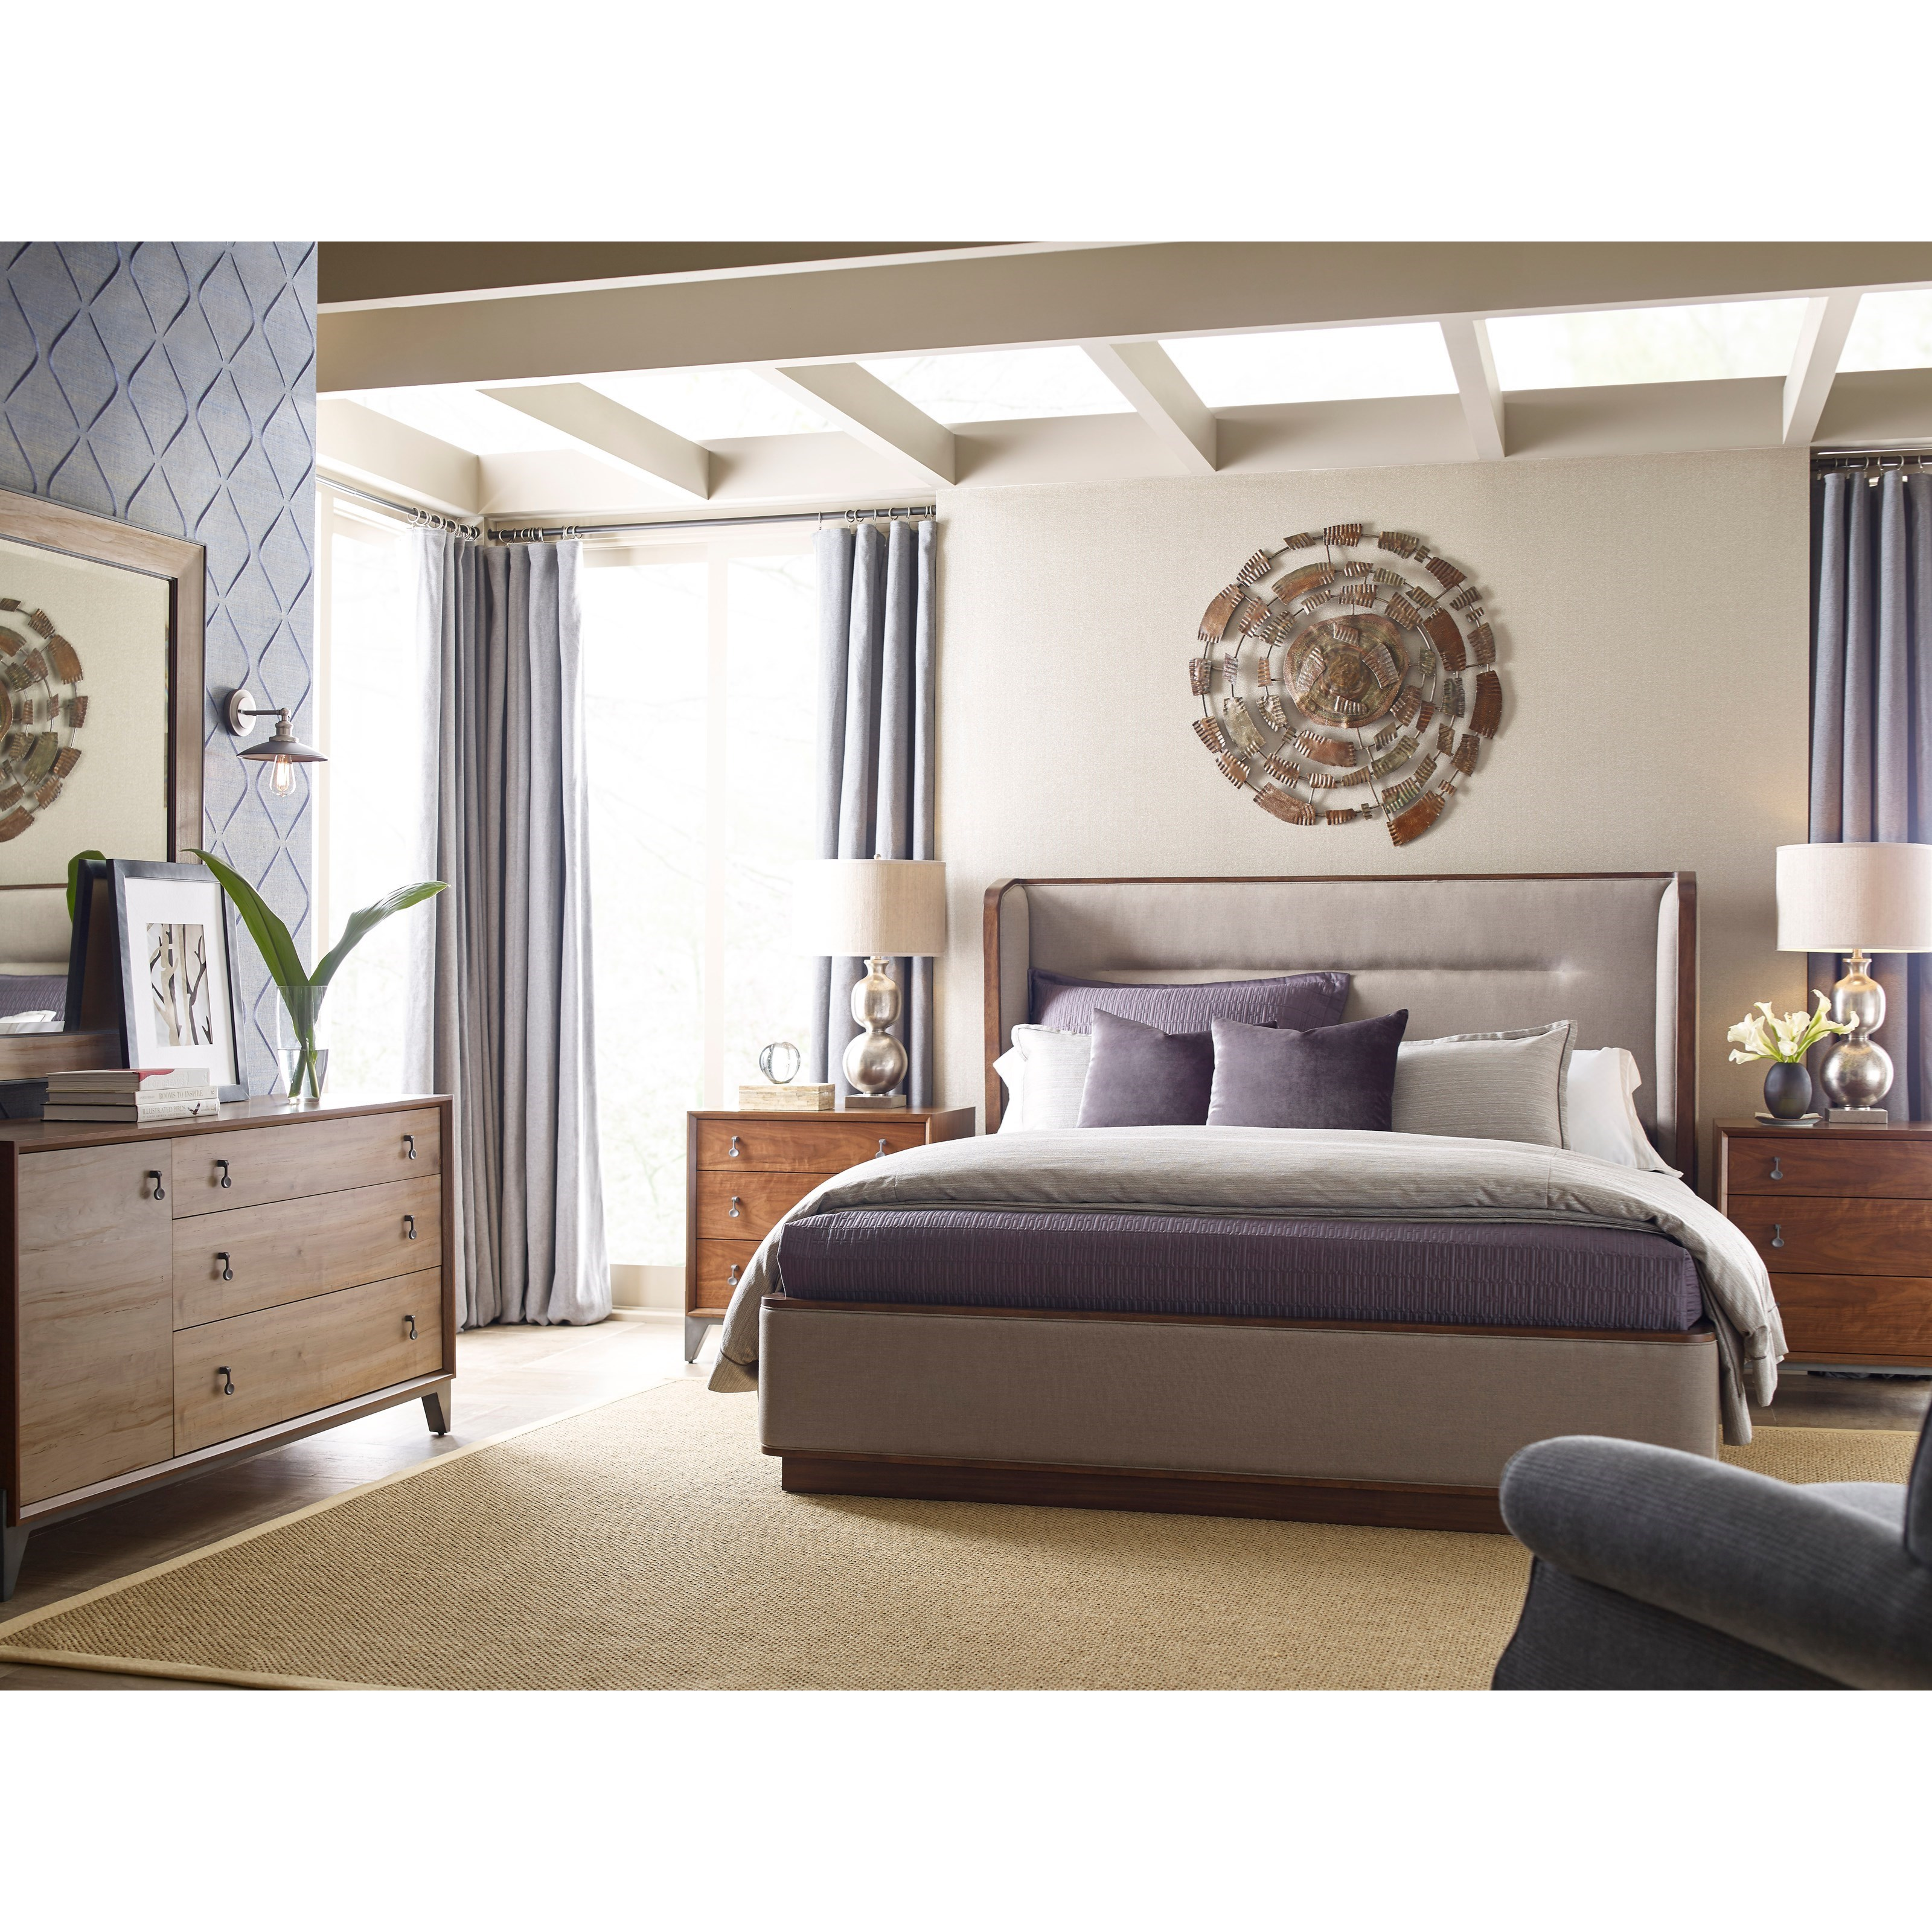 Modern Synergy Cal King Upholstered Bedroom Group by American Drew at Northeast Factory Direct